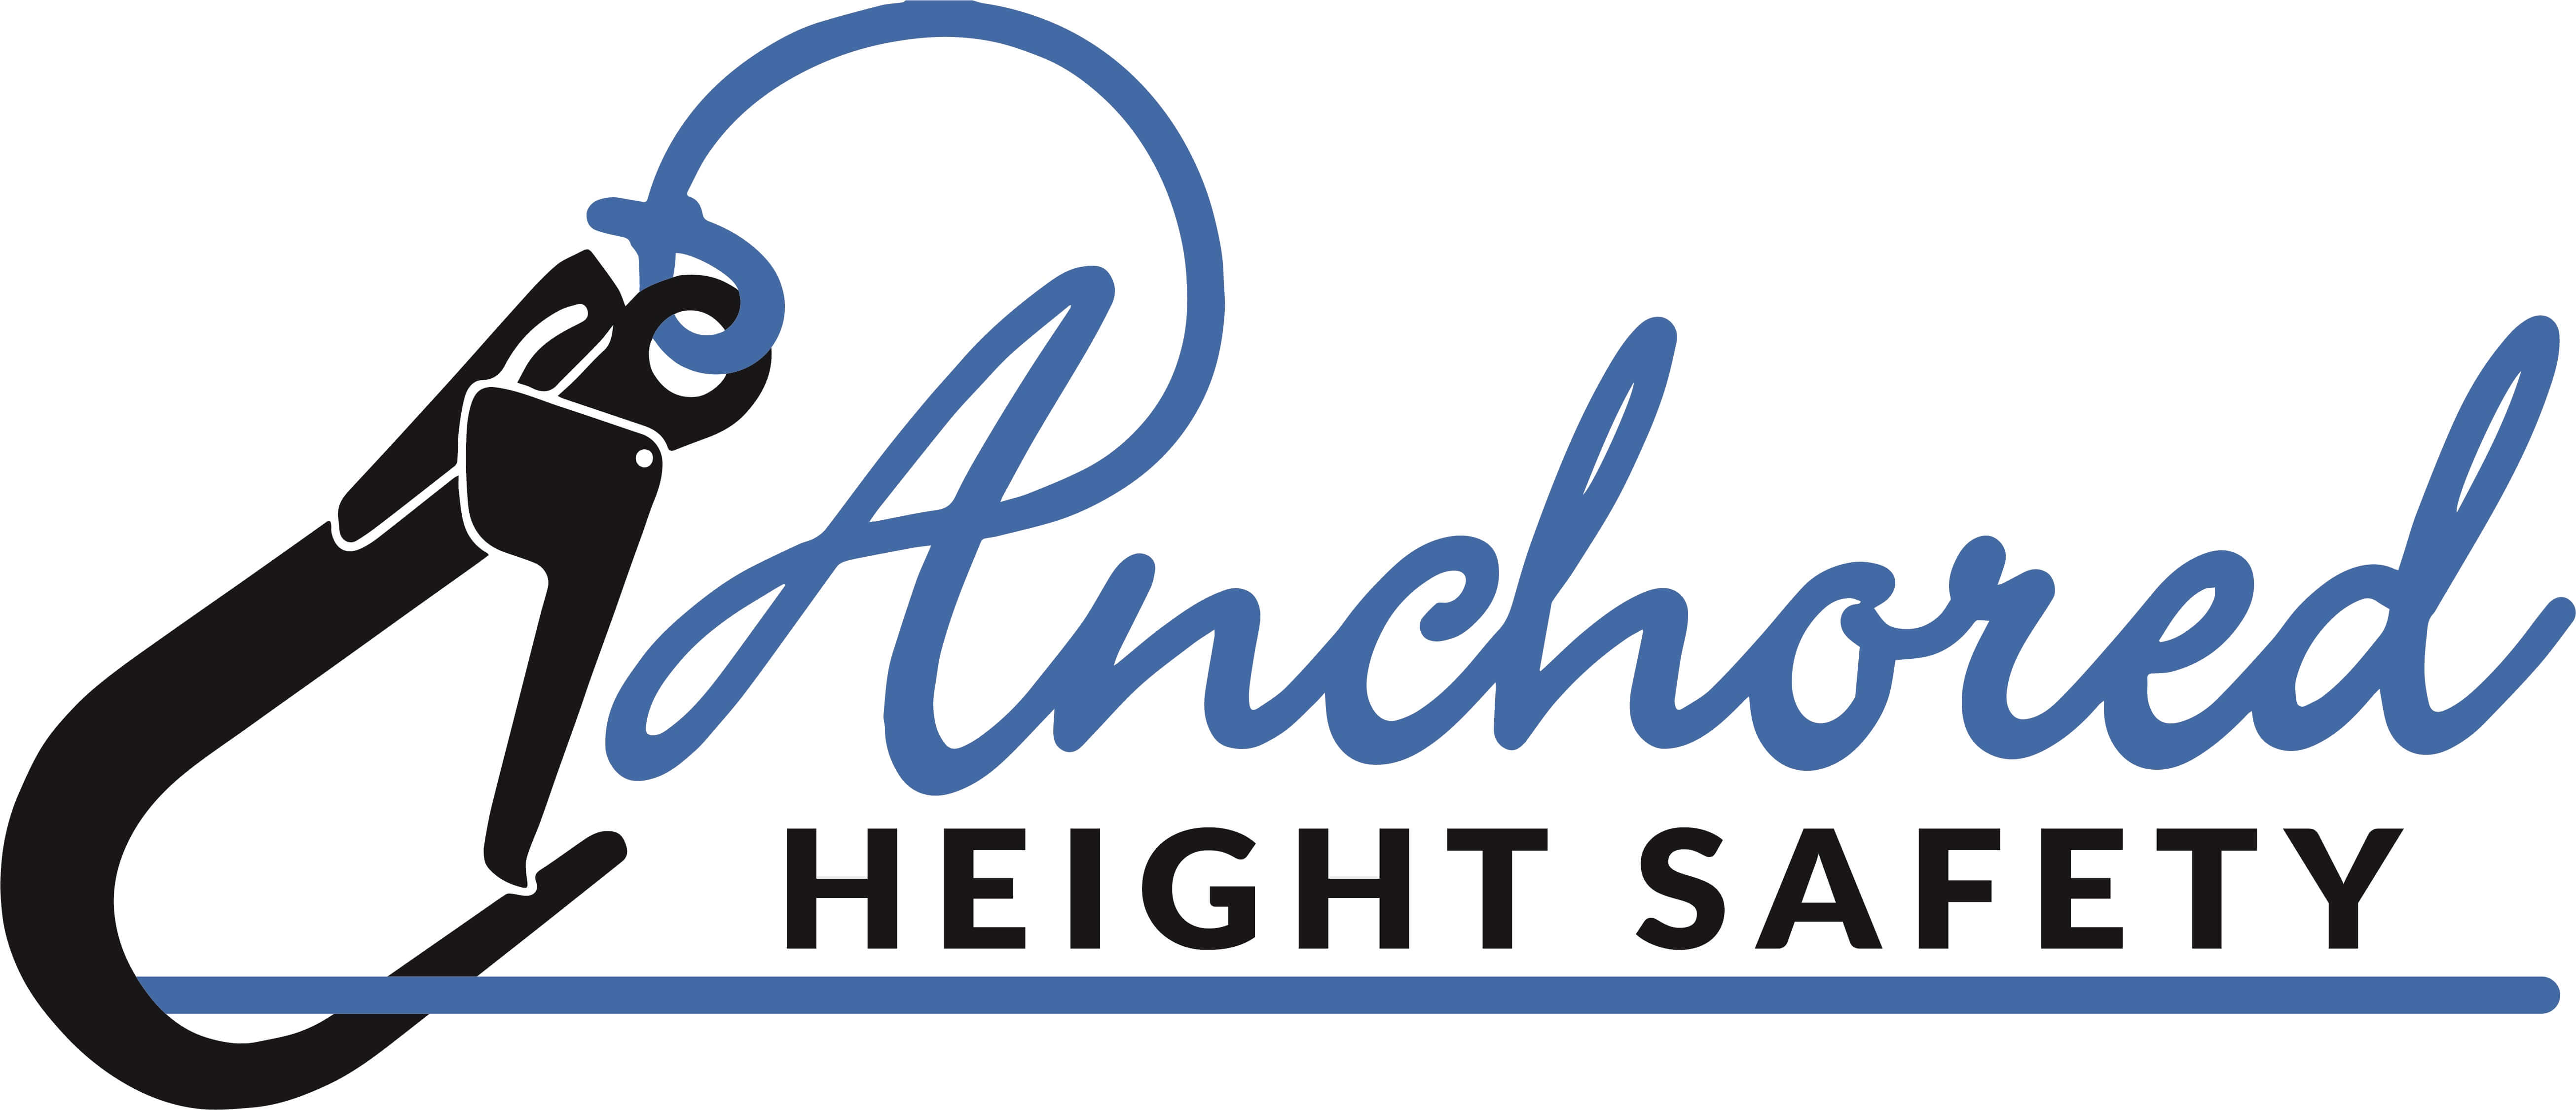 Anchored Height Safety